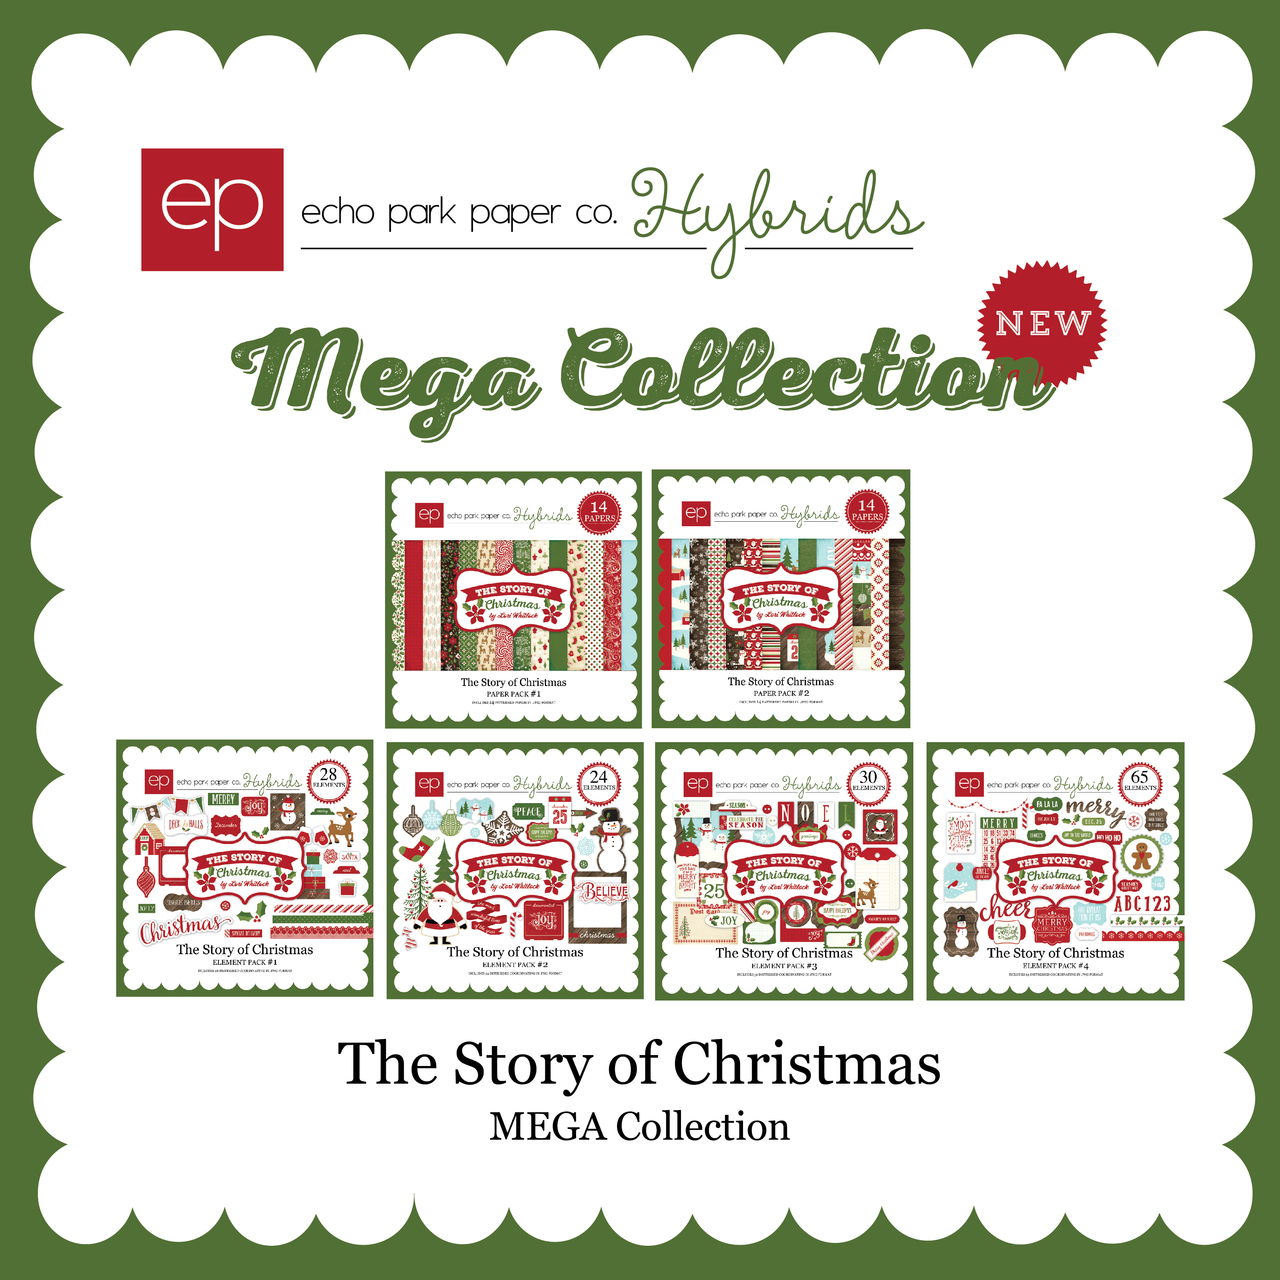 The Story of Christmas Mega Collection